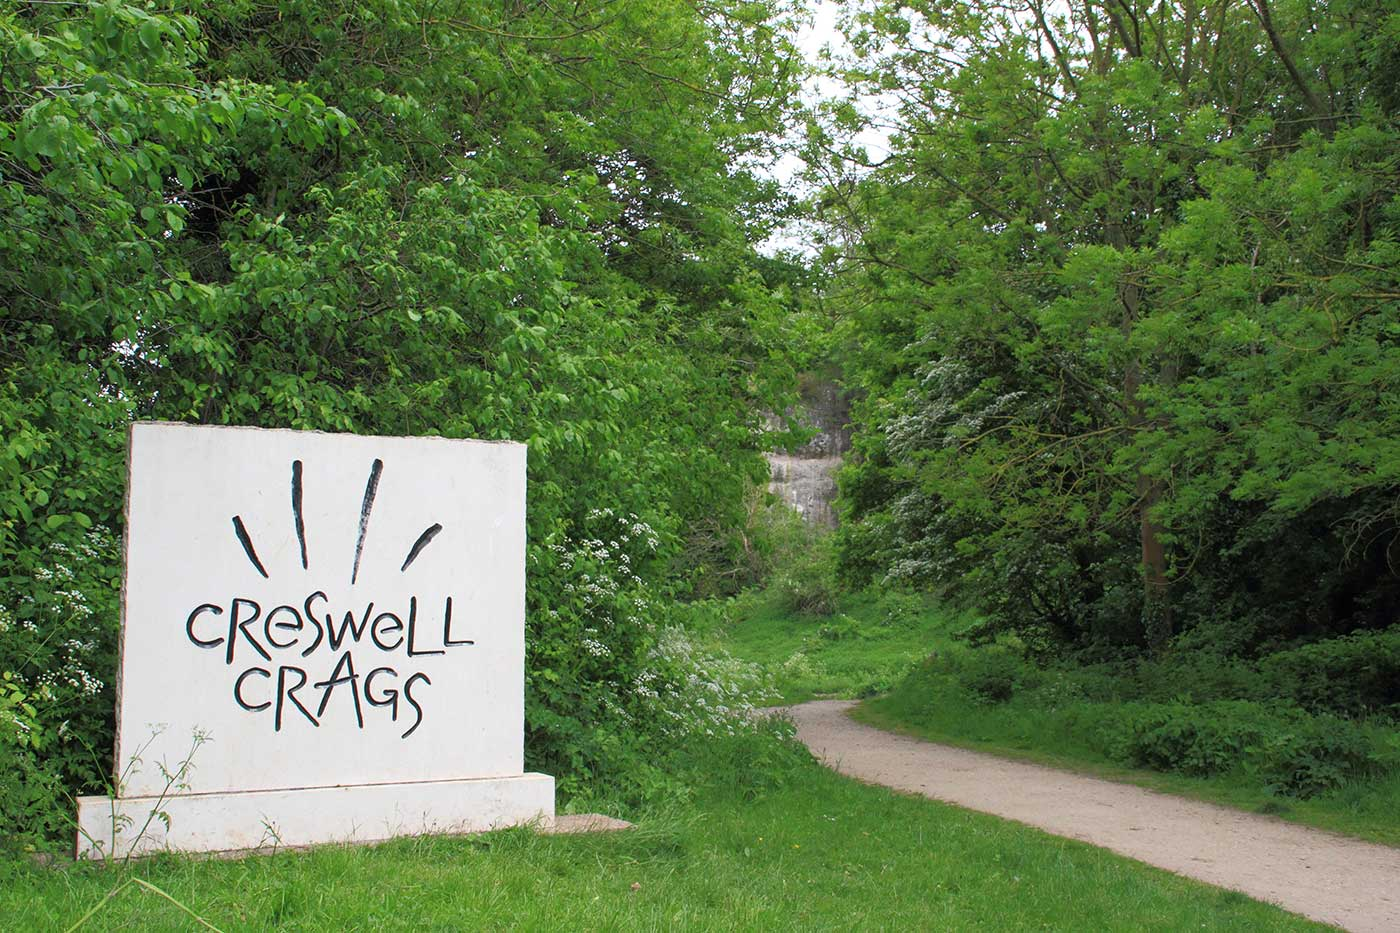 Creswell Crags signage design